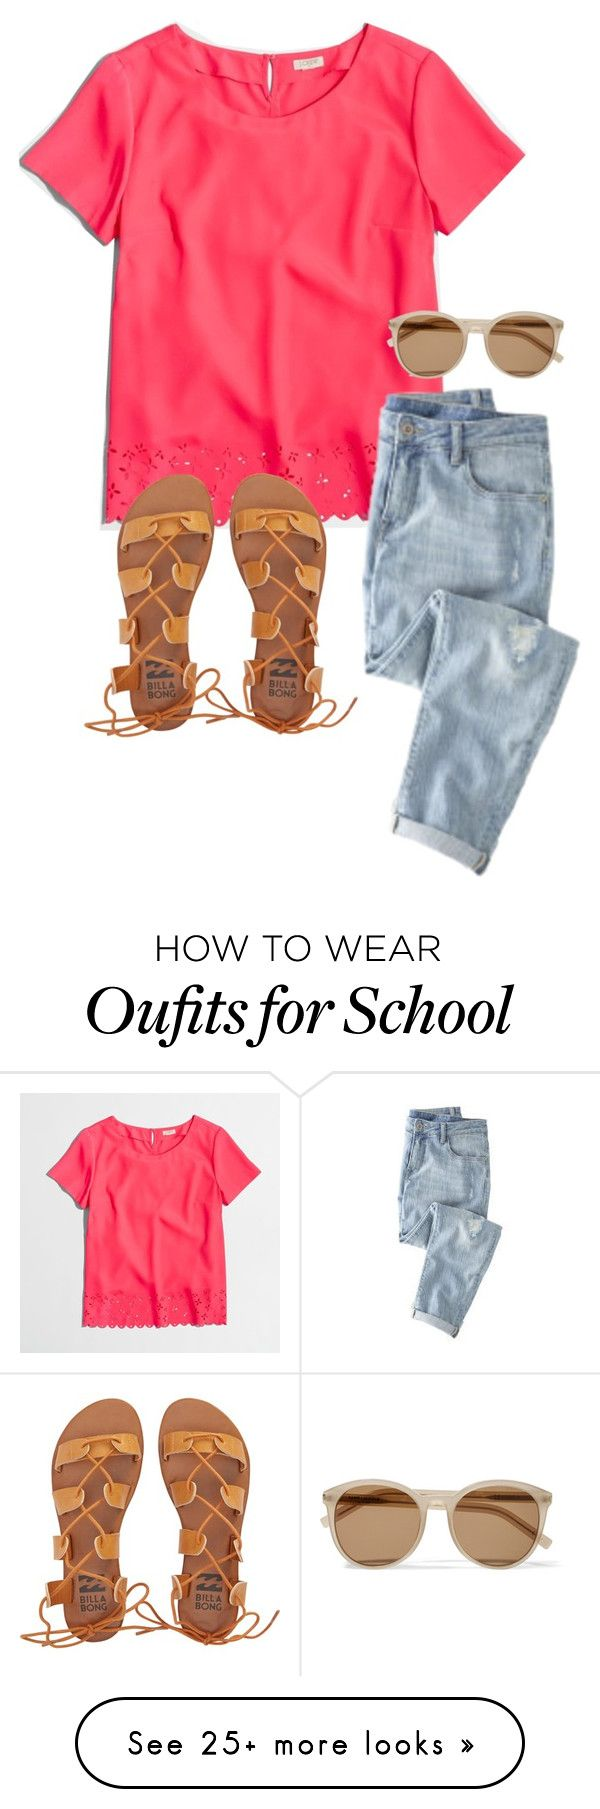 """""""school"""" by alexatesh on Polyvore featuring J.Crew, Wrap, Billabong and Yves Saint Laurent"""